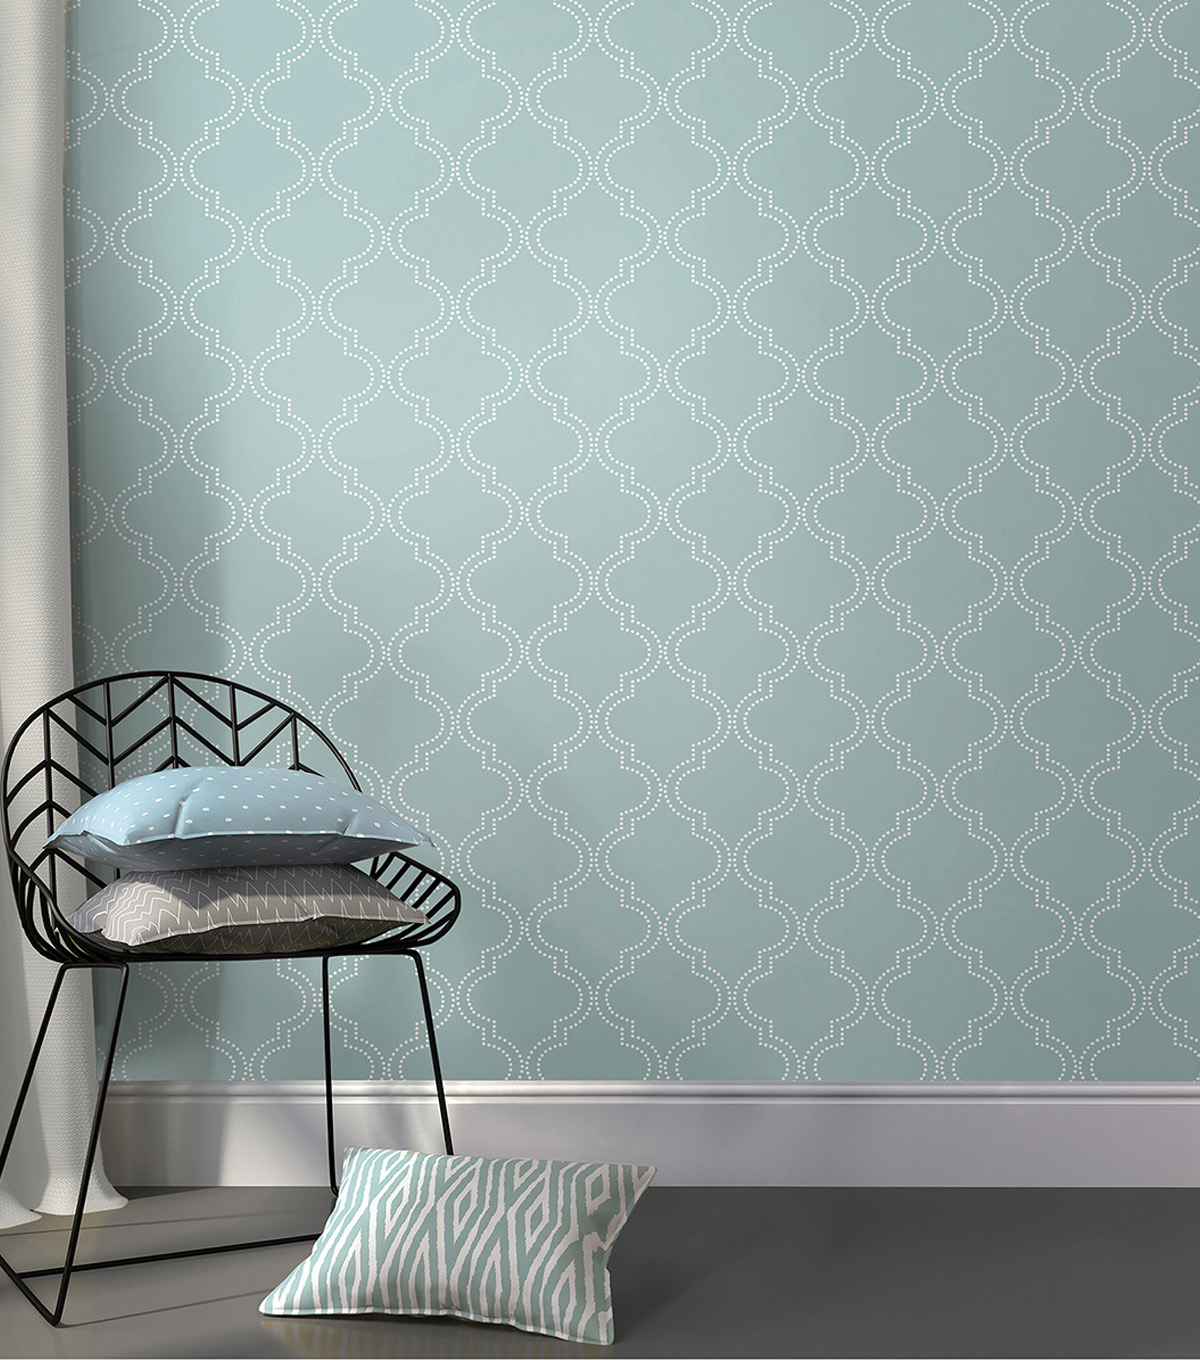 WallPops NuWallpaper Peel & Stick Wallpaper-Quatrefoil